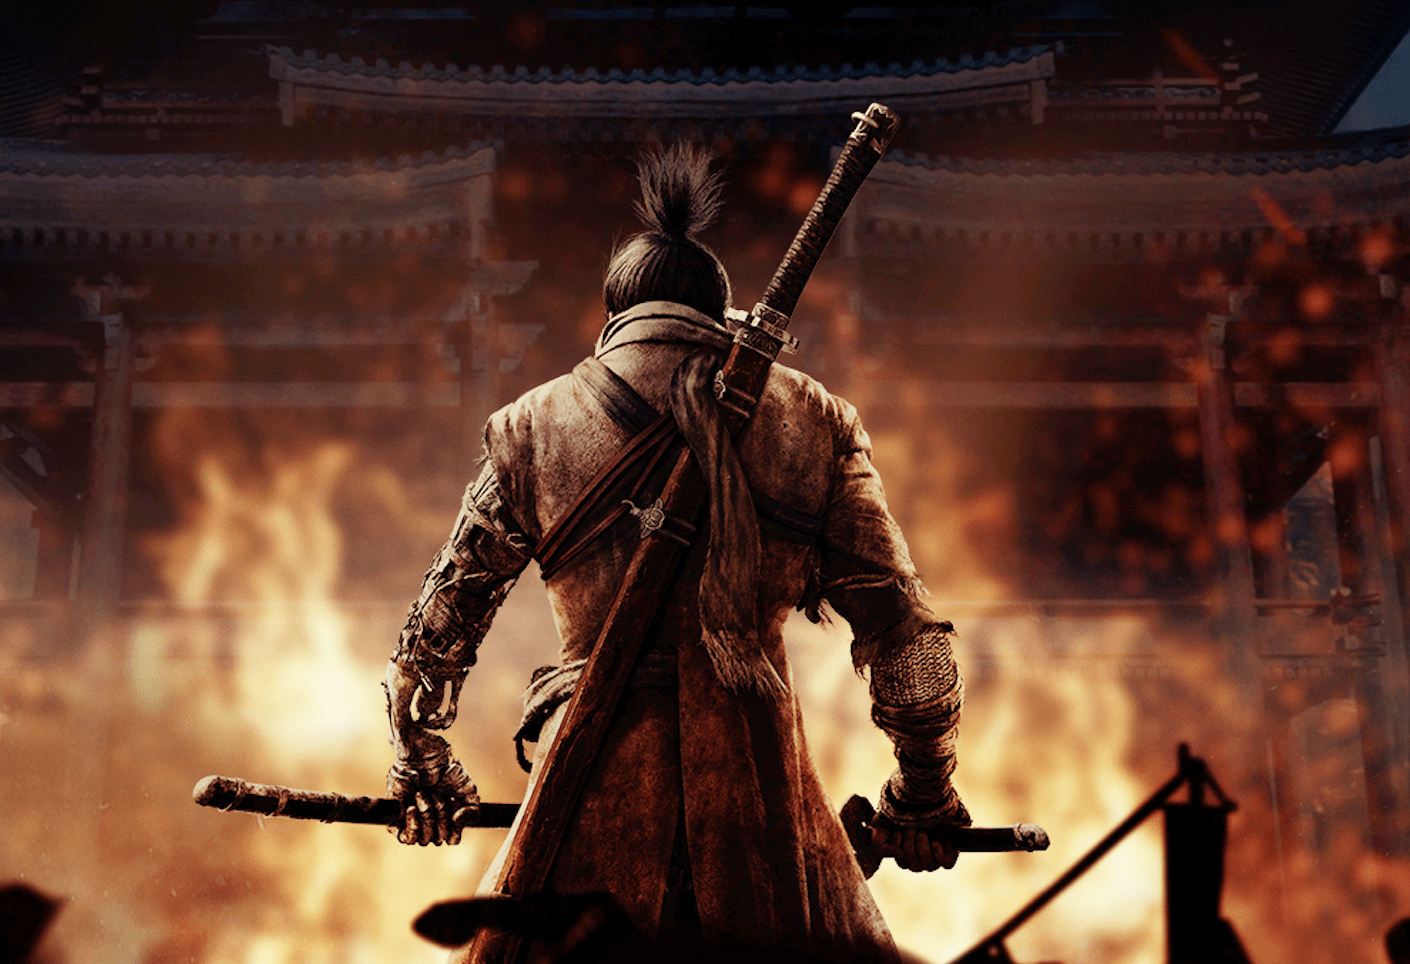 Sekiro: Shadows Die Twice launches - I'm already addicted